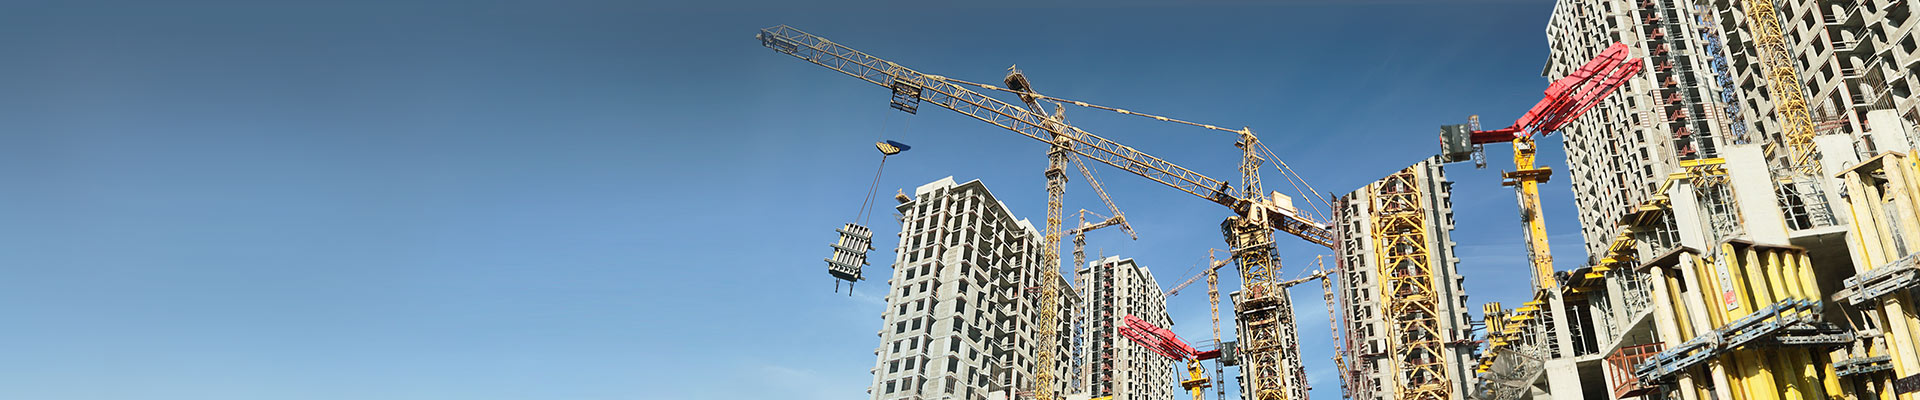 lean-construction-architecture-engineering-construction.jpg